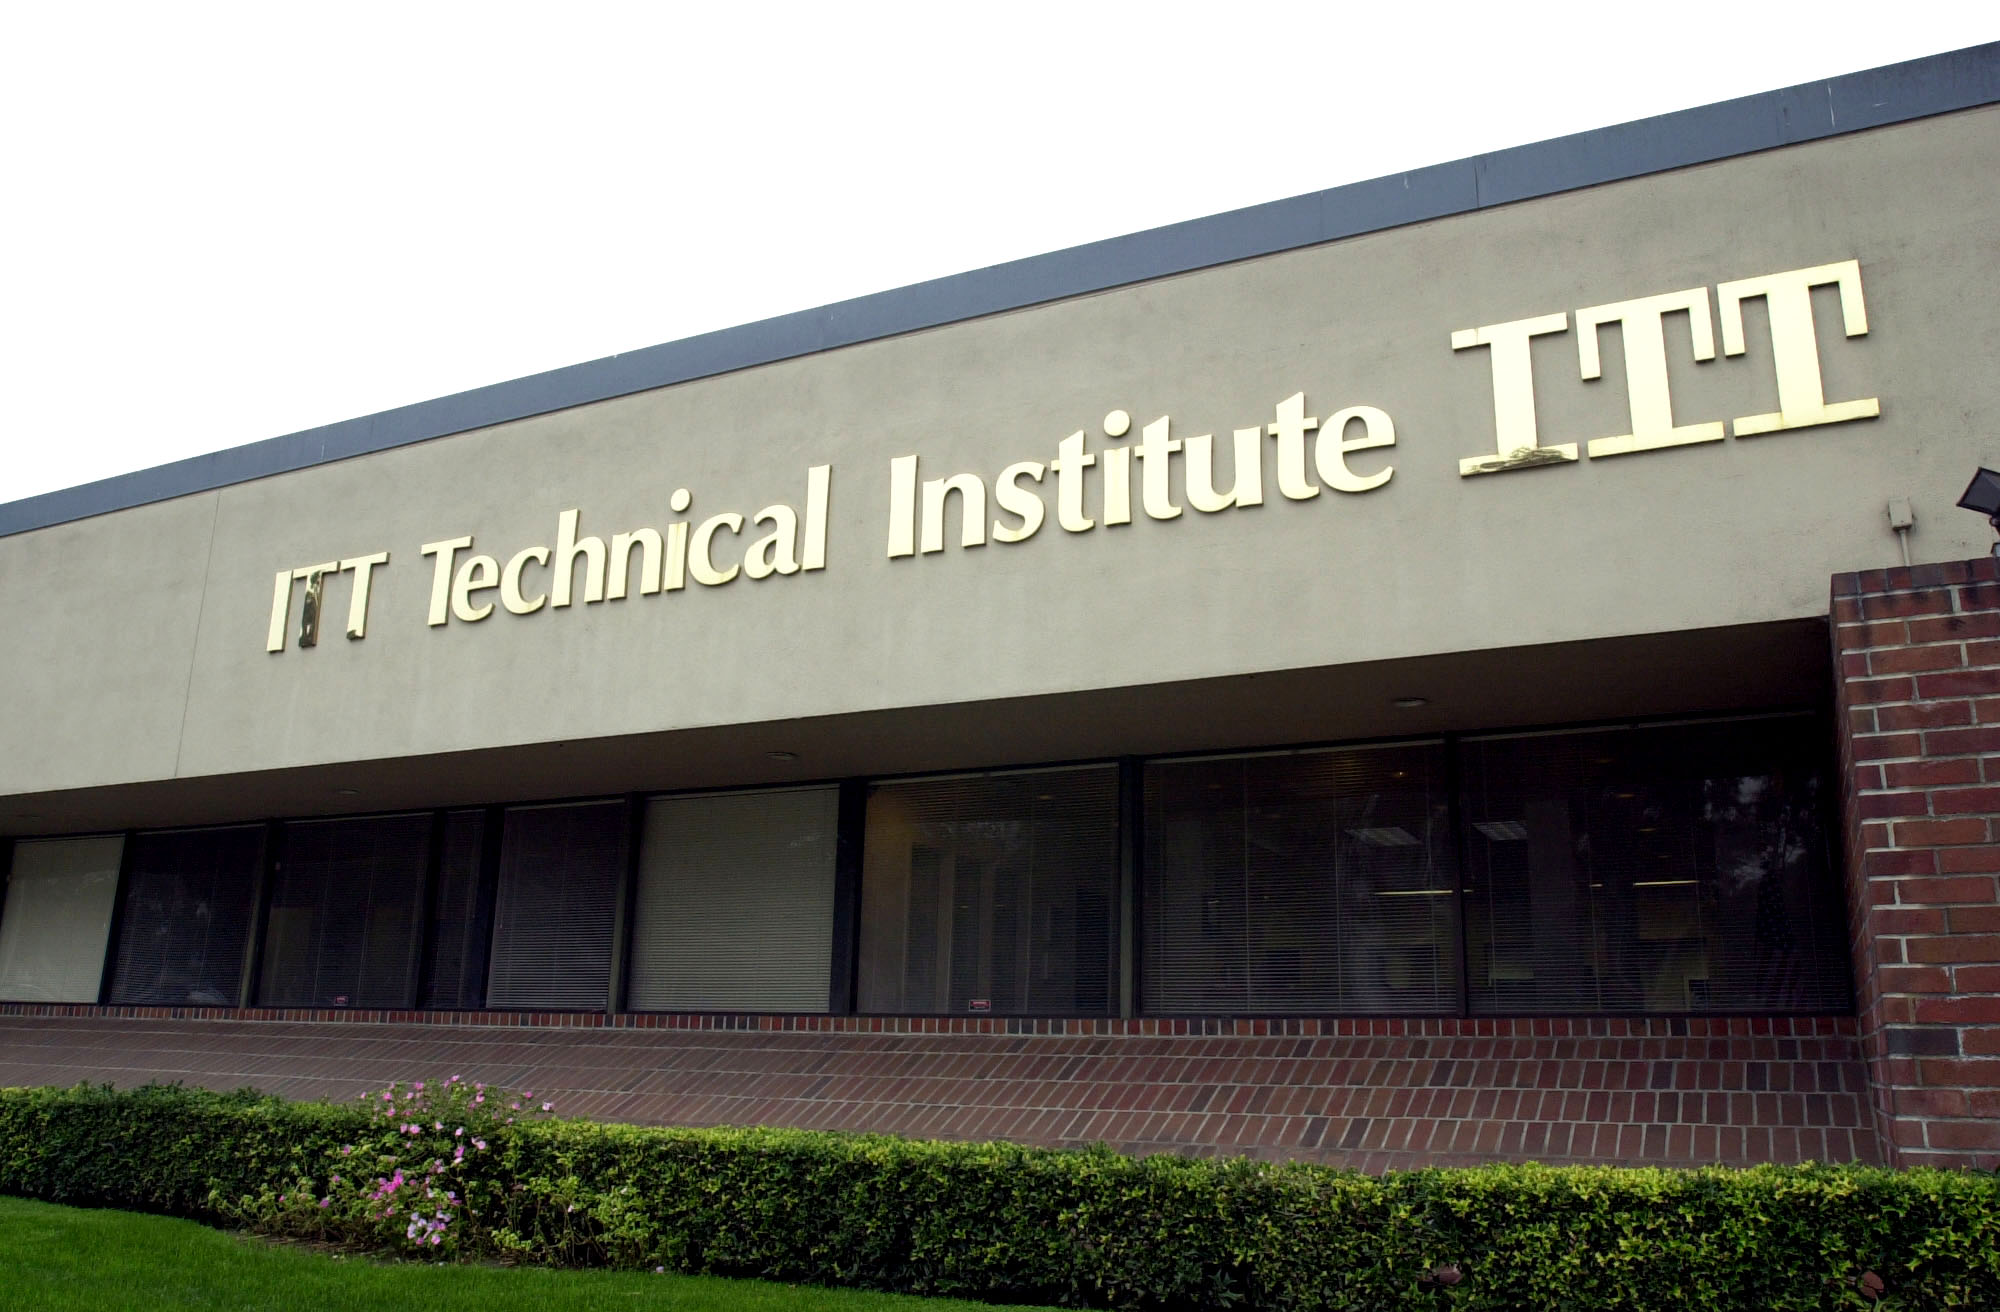 This is the campus of ITT Technical Institute in West Covina